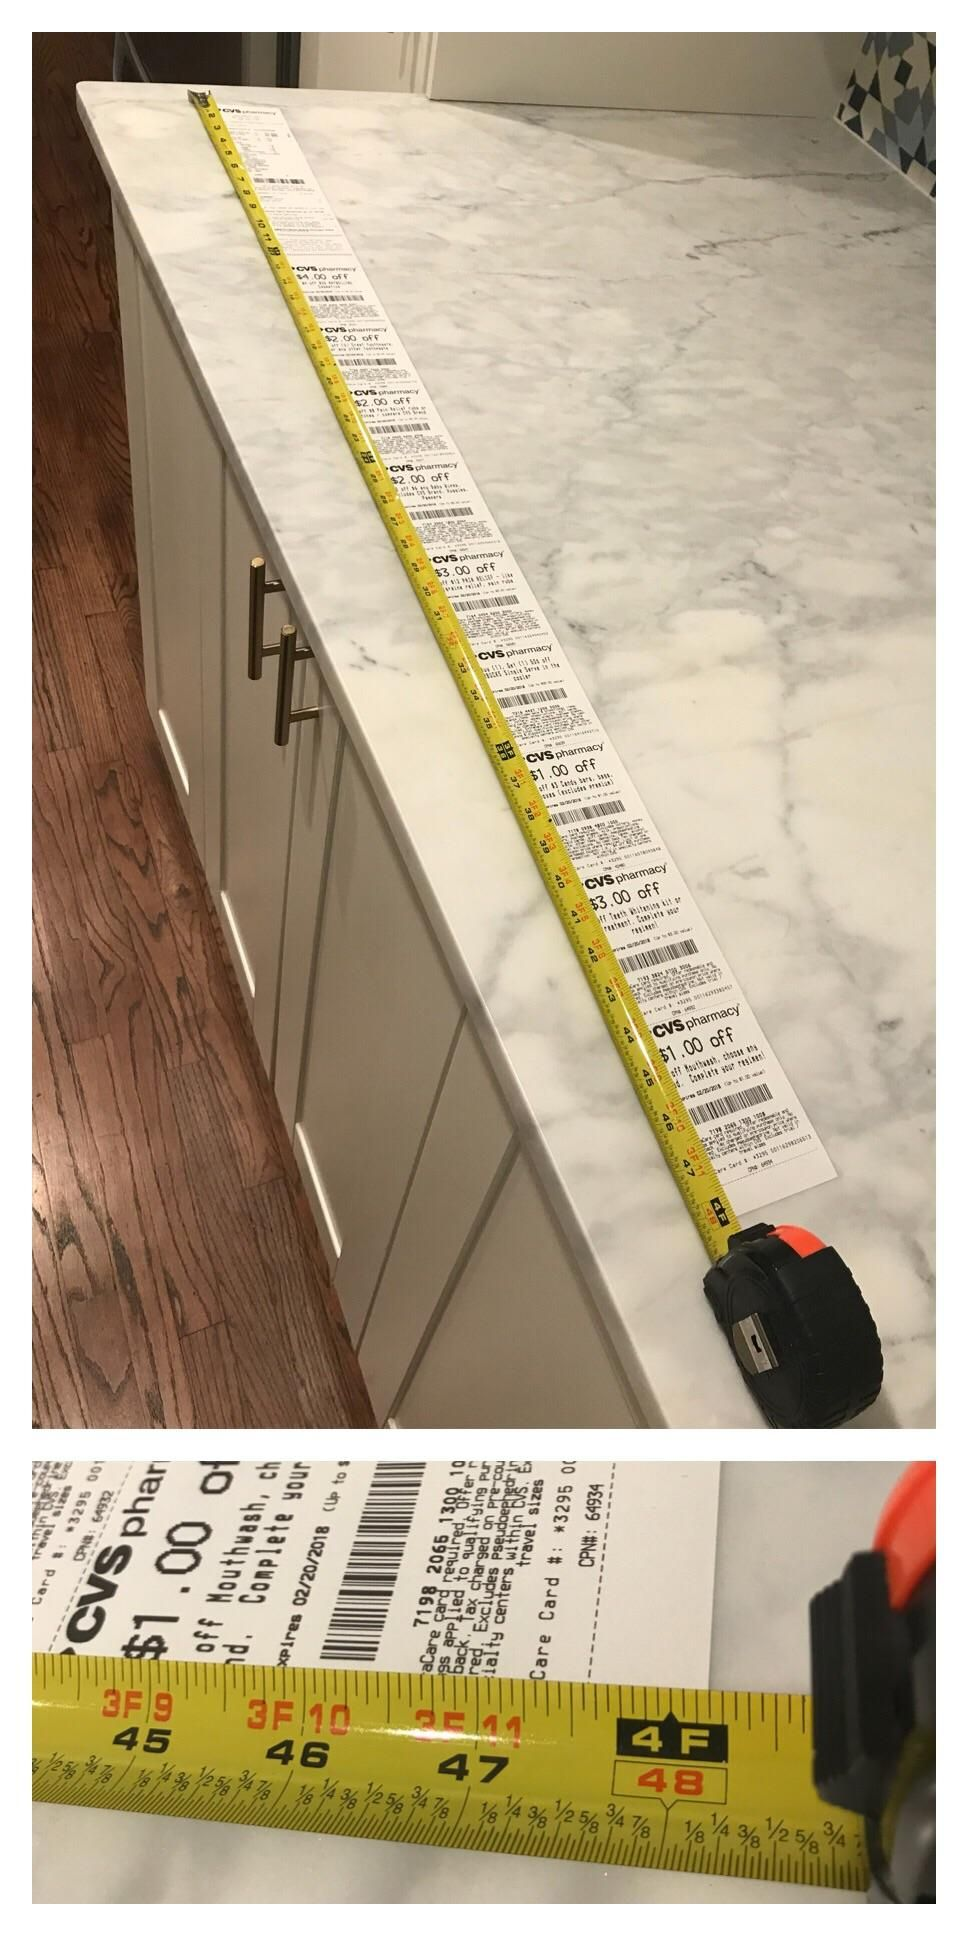 Tonight's CVS receipt for a $4 purchase